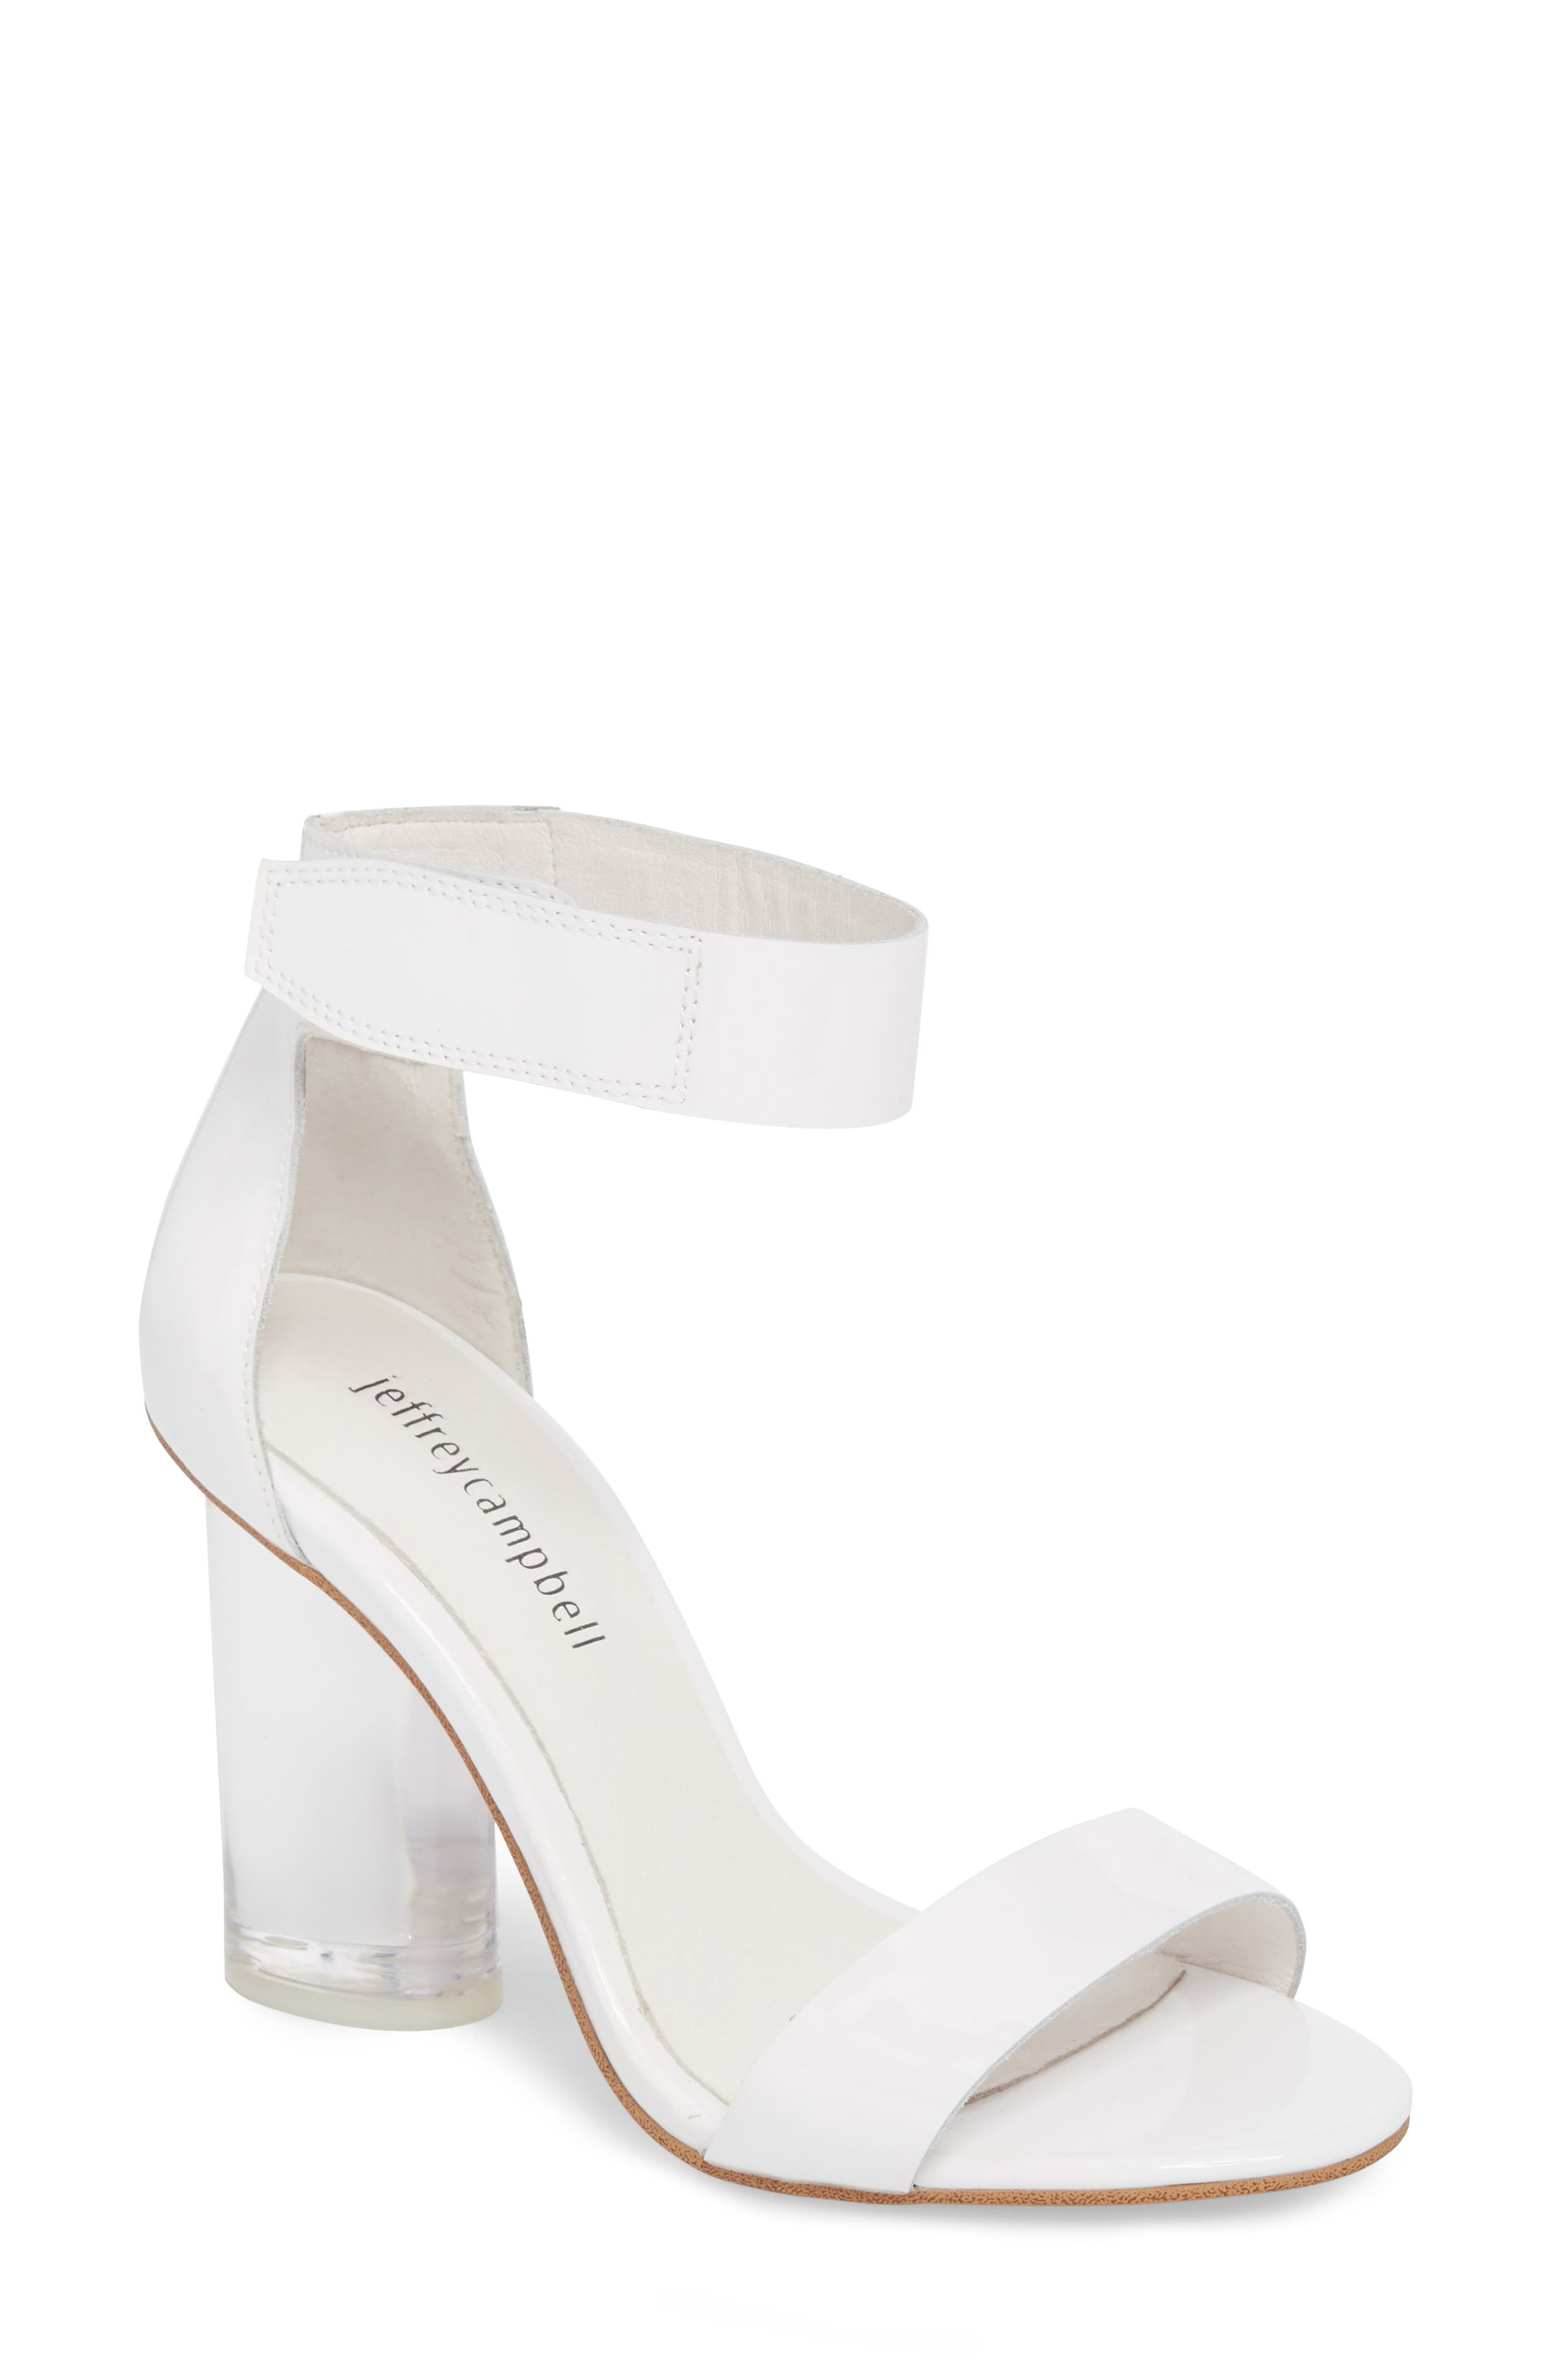 Alessa Clear Heel Sandal,                             Main thumbnail 1, color,                             White Patent